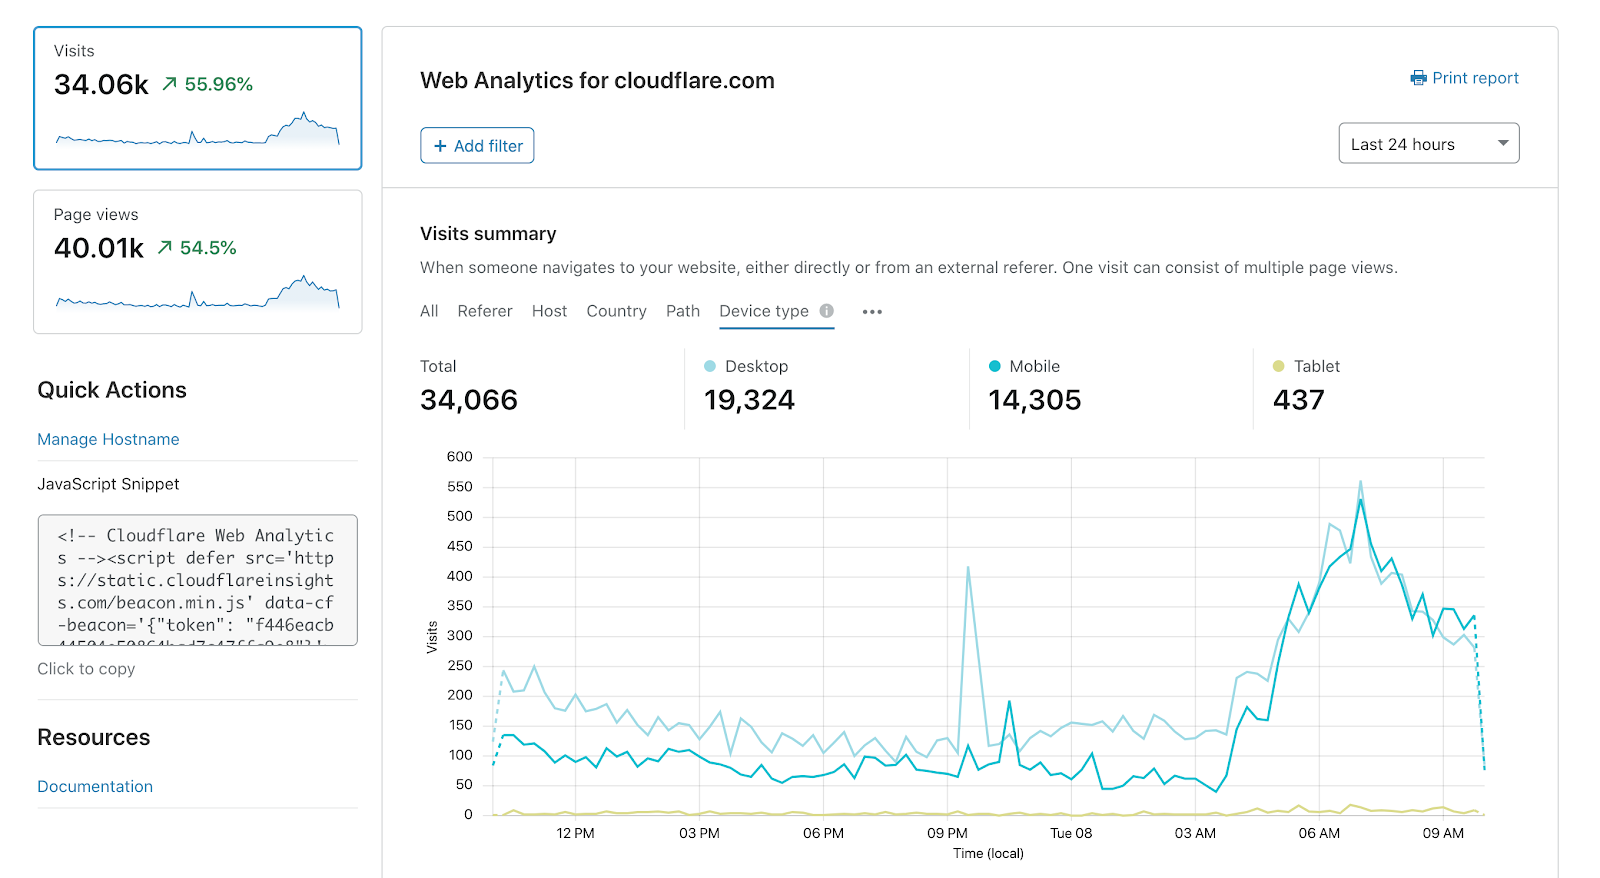 Cloudflare has released its website analytics system